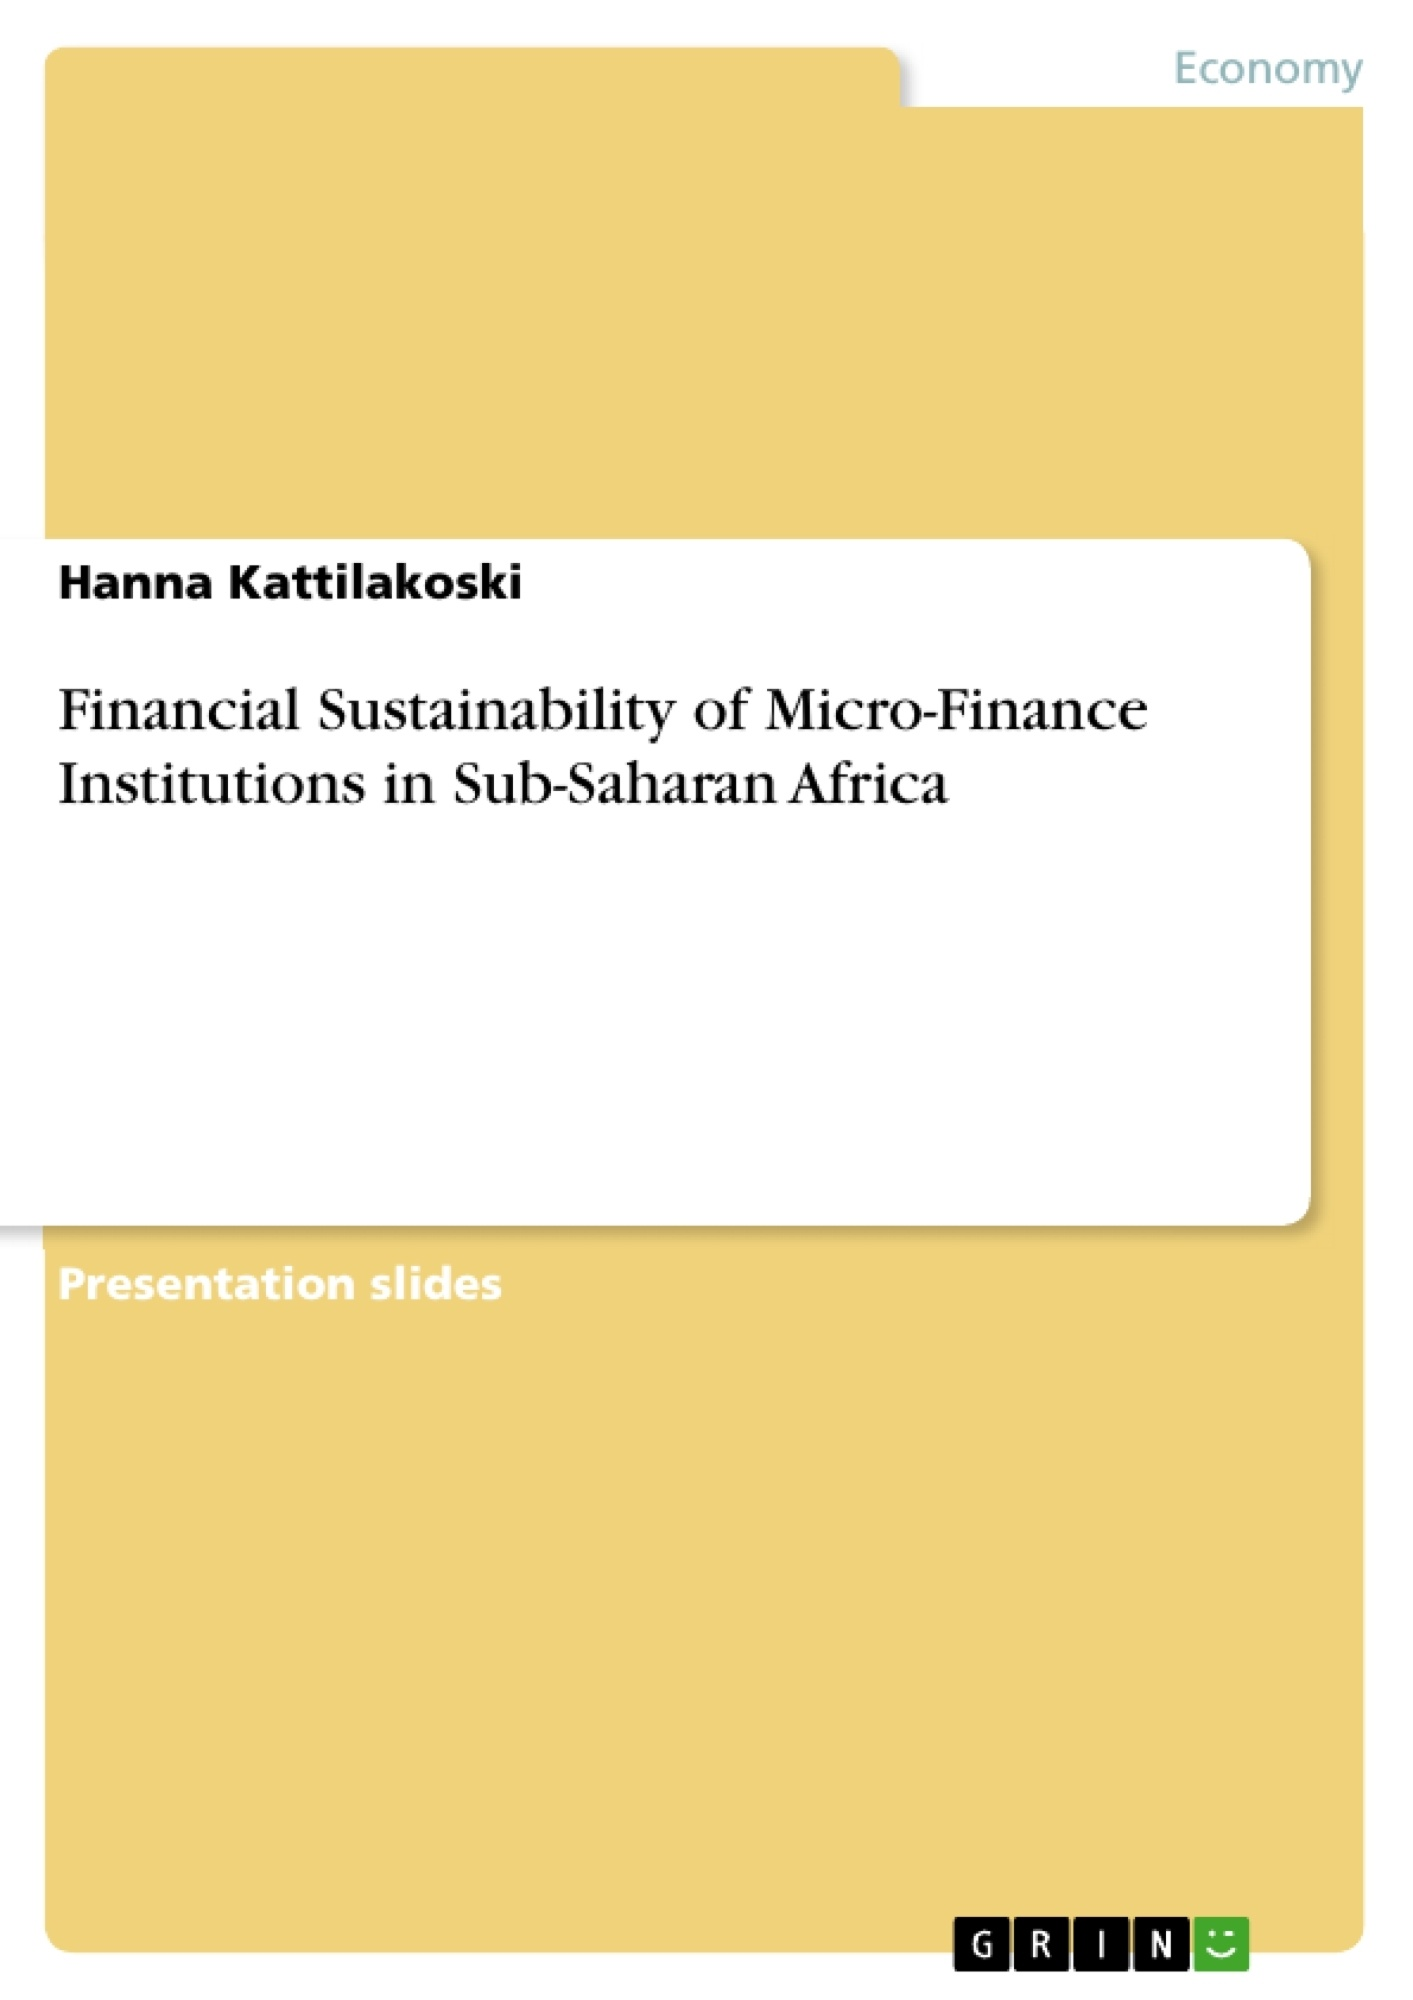 Title: Financial Sustainability of Micro-Finance Institutions in Sub-Saharan Africa